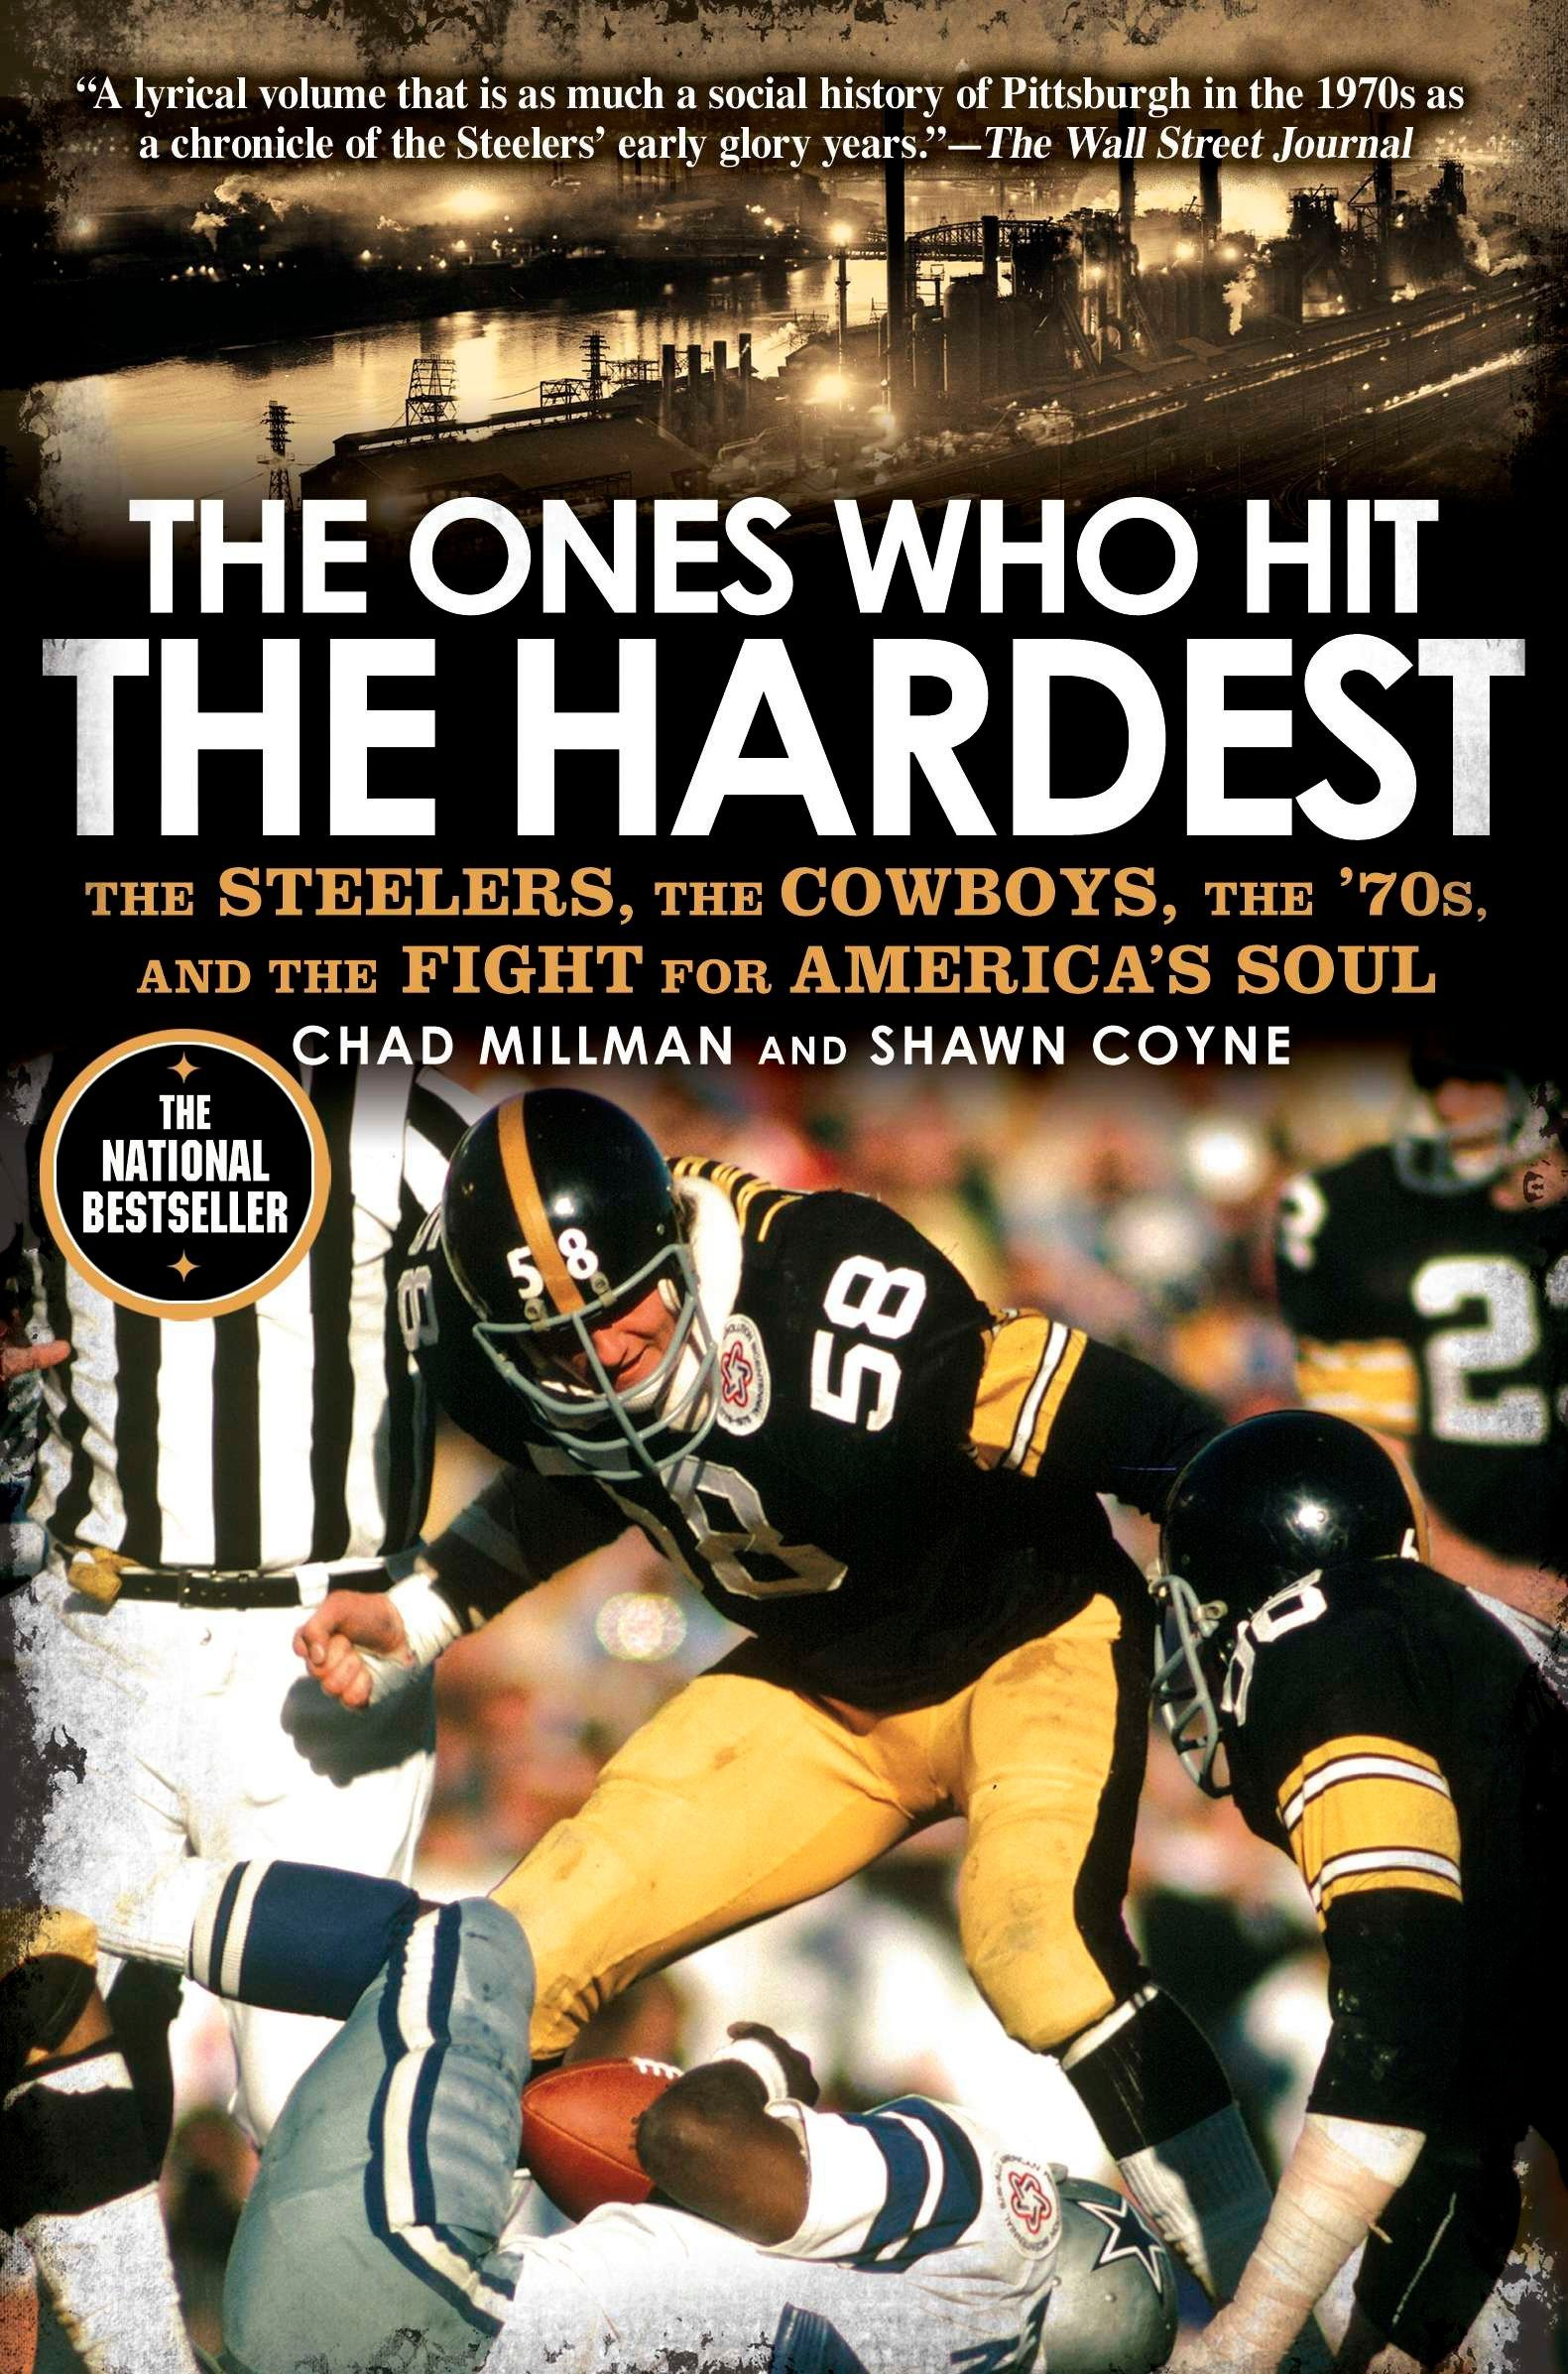 41a997cc793 The Ones Who Hit the Hardest: The Steelers, the Cowboys, the '70s ...